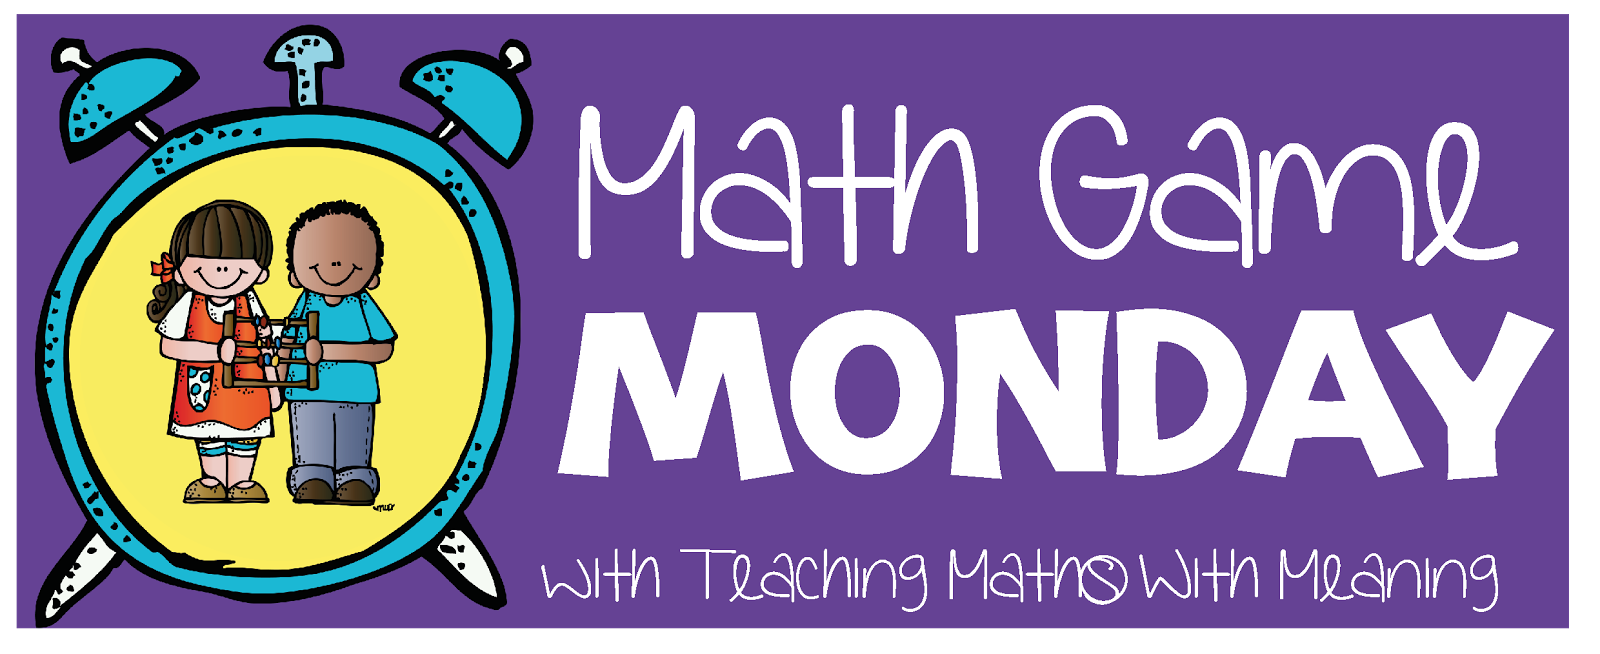 Awesome Yahoo Math Games Ideas - Printable Math Worksheets ...